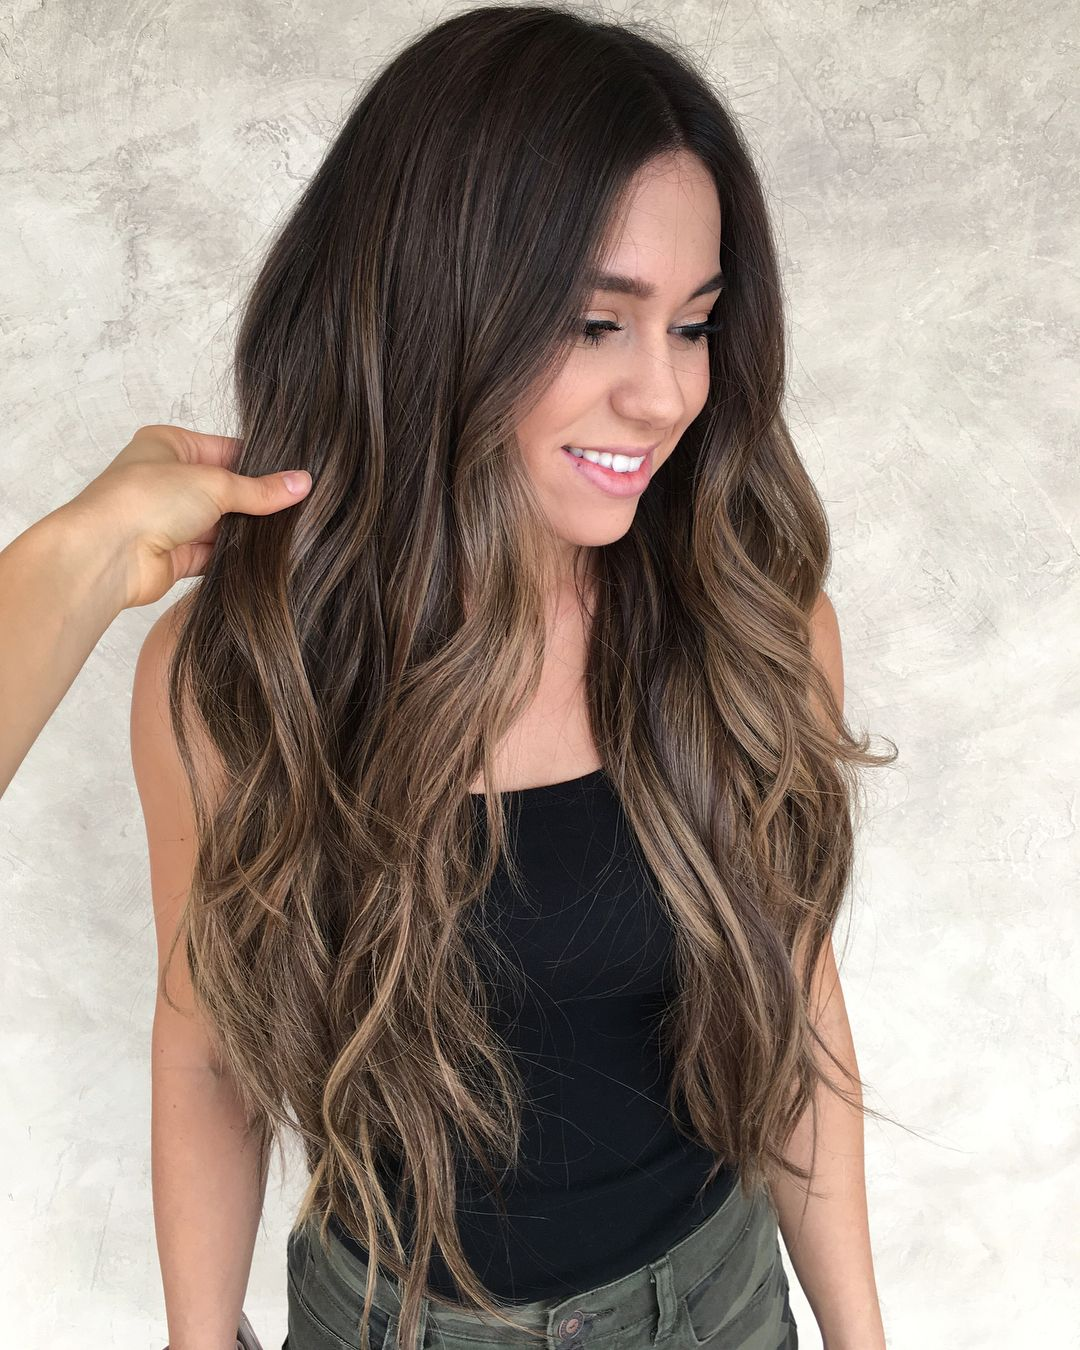 """Chrissy Rasmussen on Instagram: """"Chocolate caramel 🍫 w/ @habit.hand.tied.extensions ❤️ Swipe for before ➡️ by @hairby_chrissy @hairbylaurenn @kimmy.ann.hair"""""""